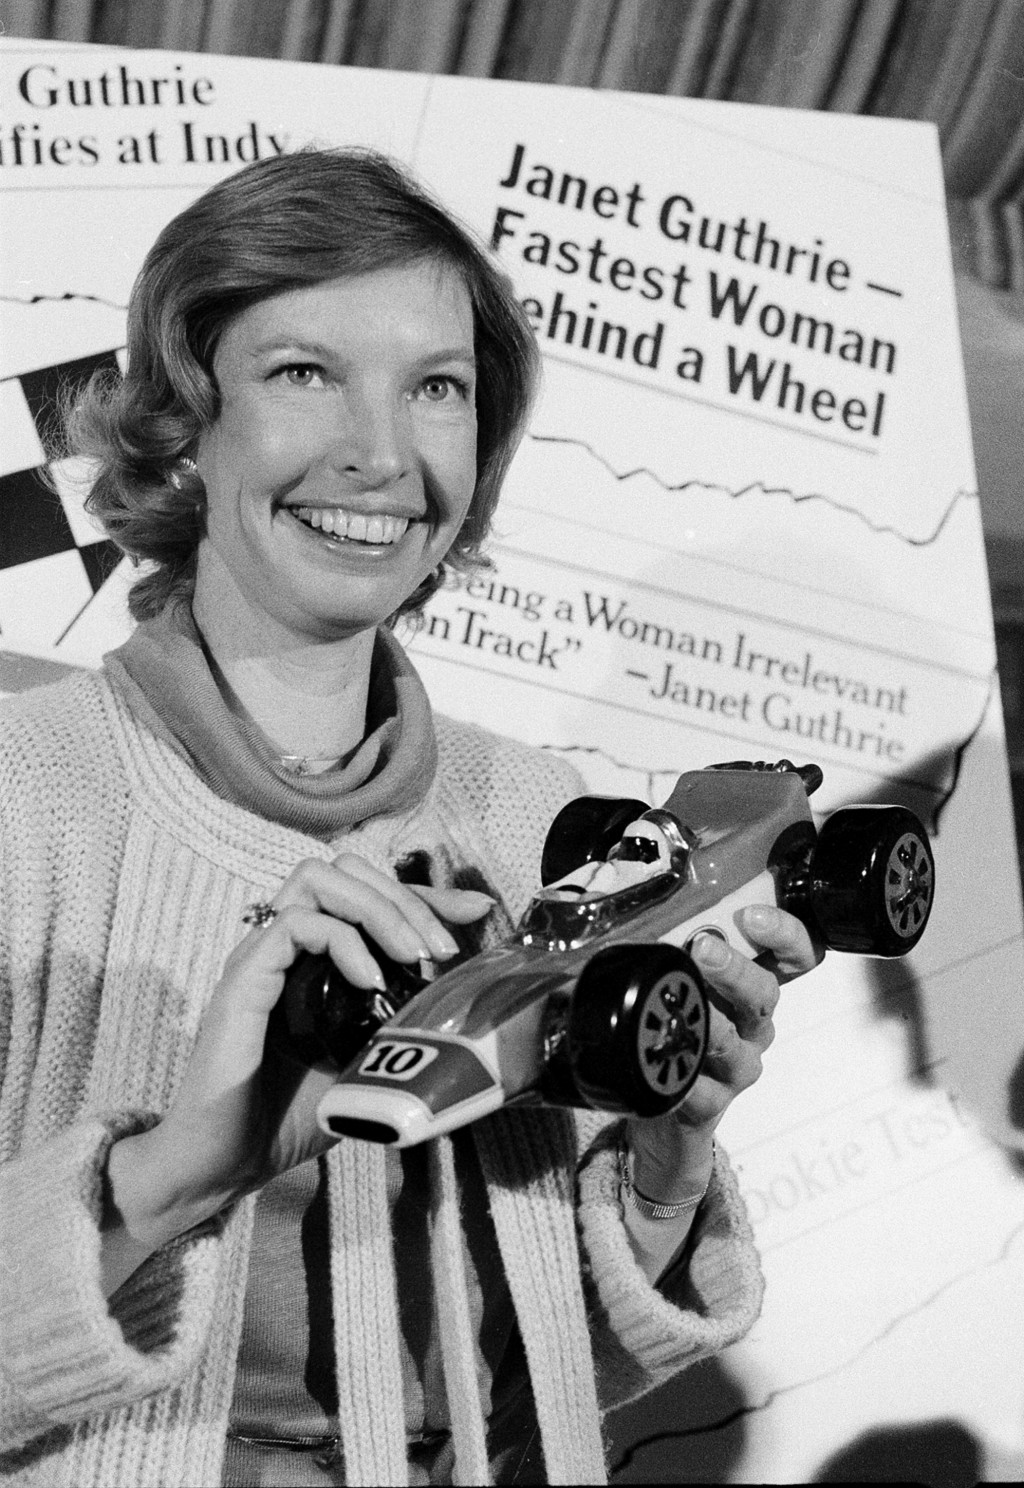 FILE - Janet Guthrie poses with a toy race car at a news conference in New York, in this April 6, 1978, file photo. Janet Guthrie is still astonished ...